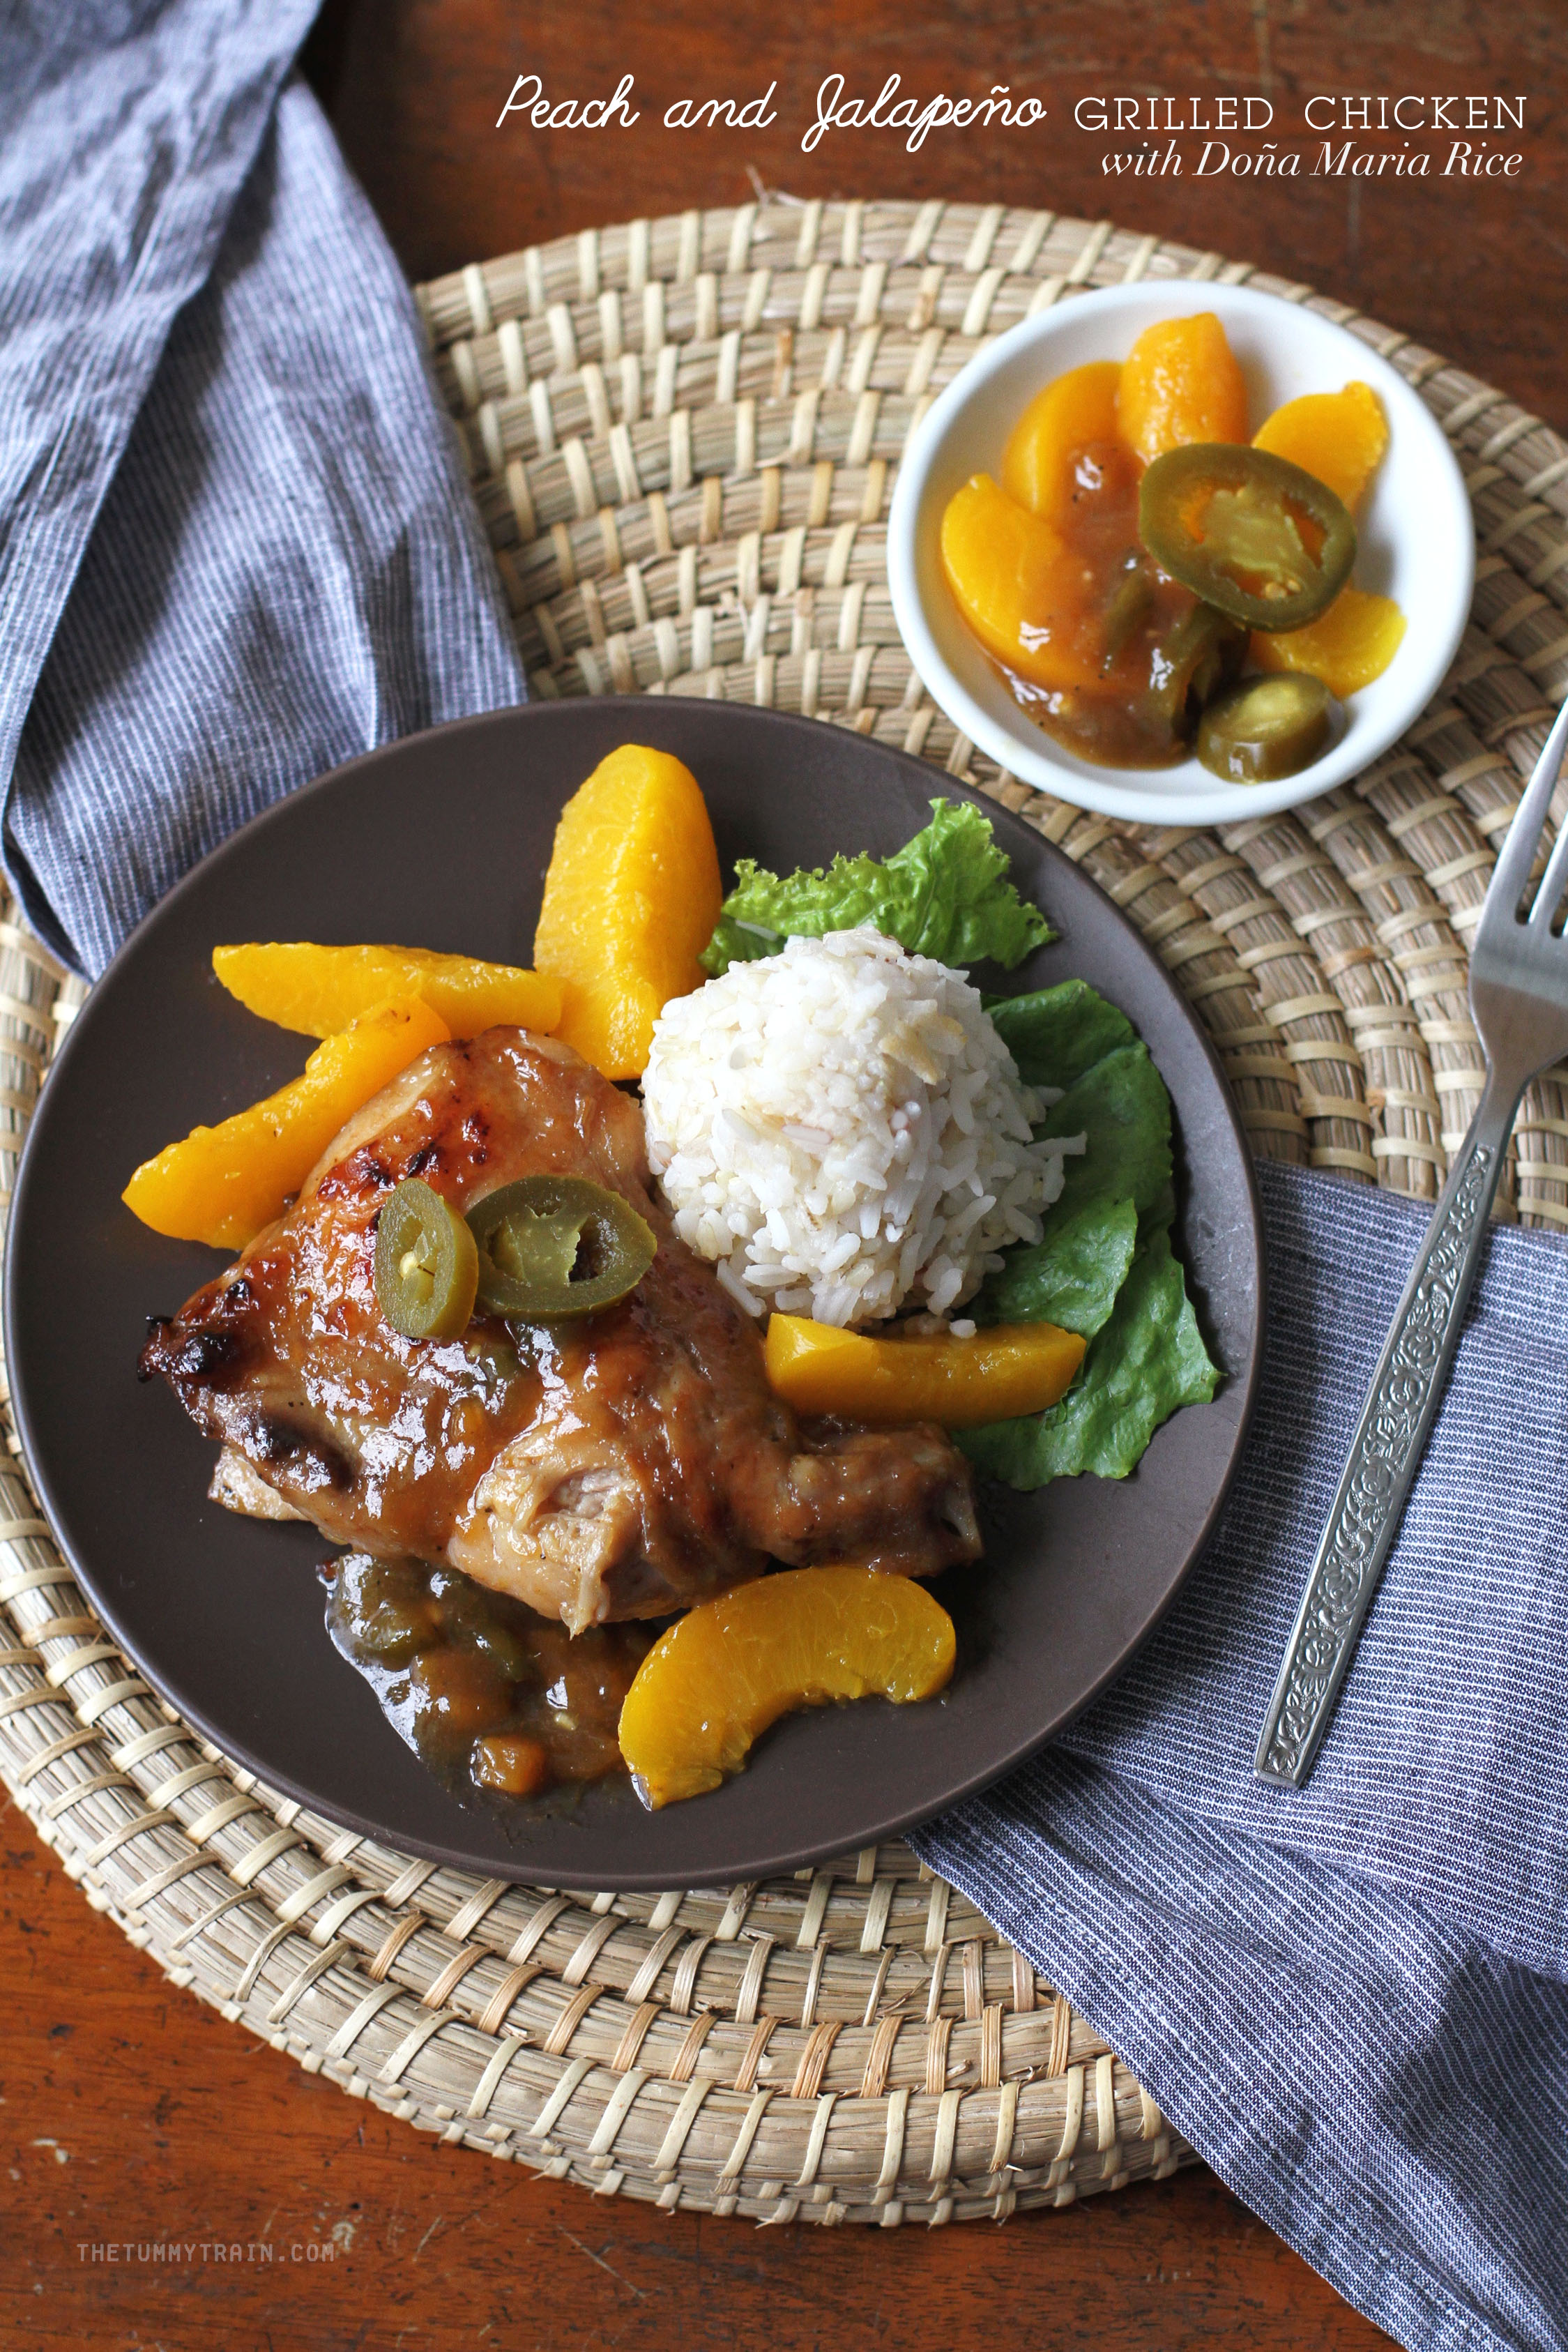 PJ Grilled Chicken 1 - Peach-Jalapeño Grilled Chicken with a side of Doña Maria Rice